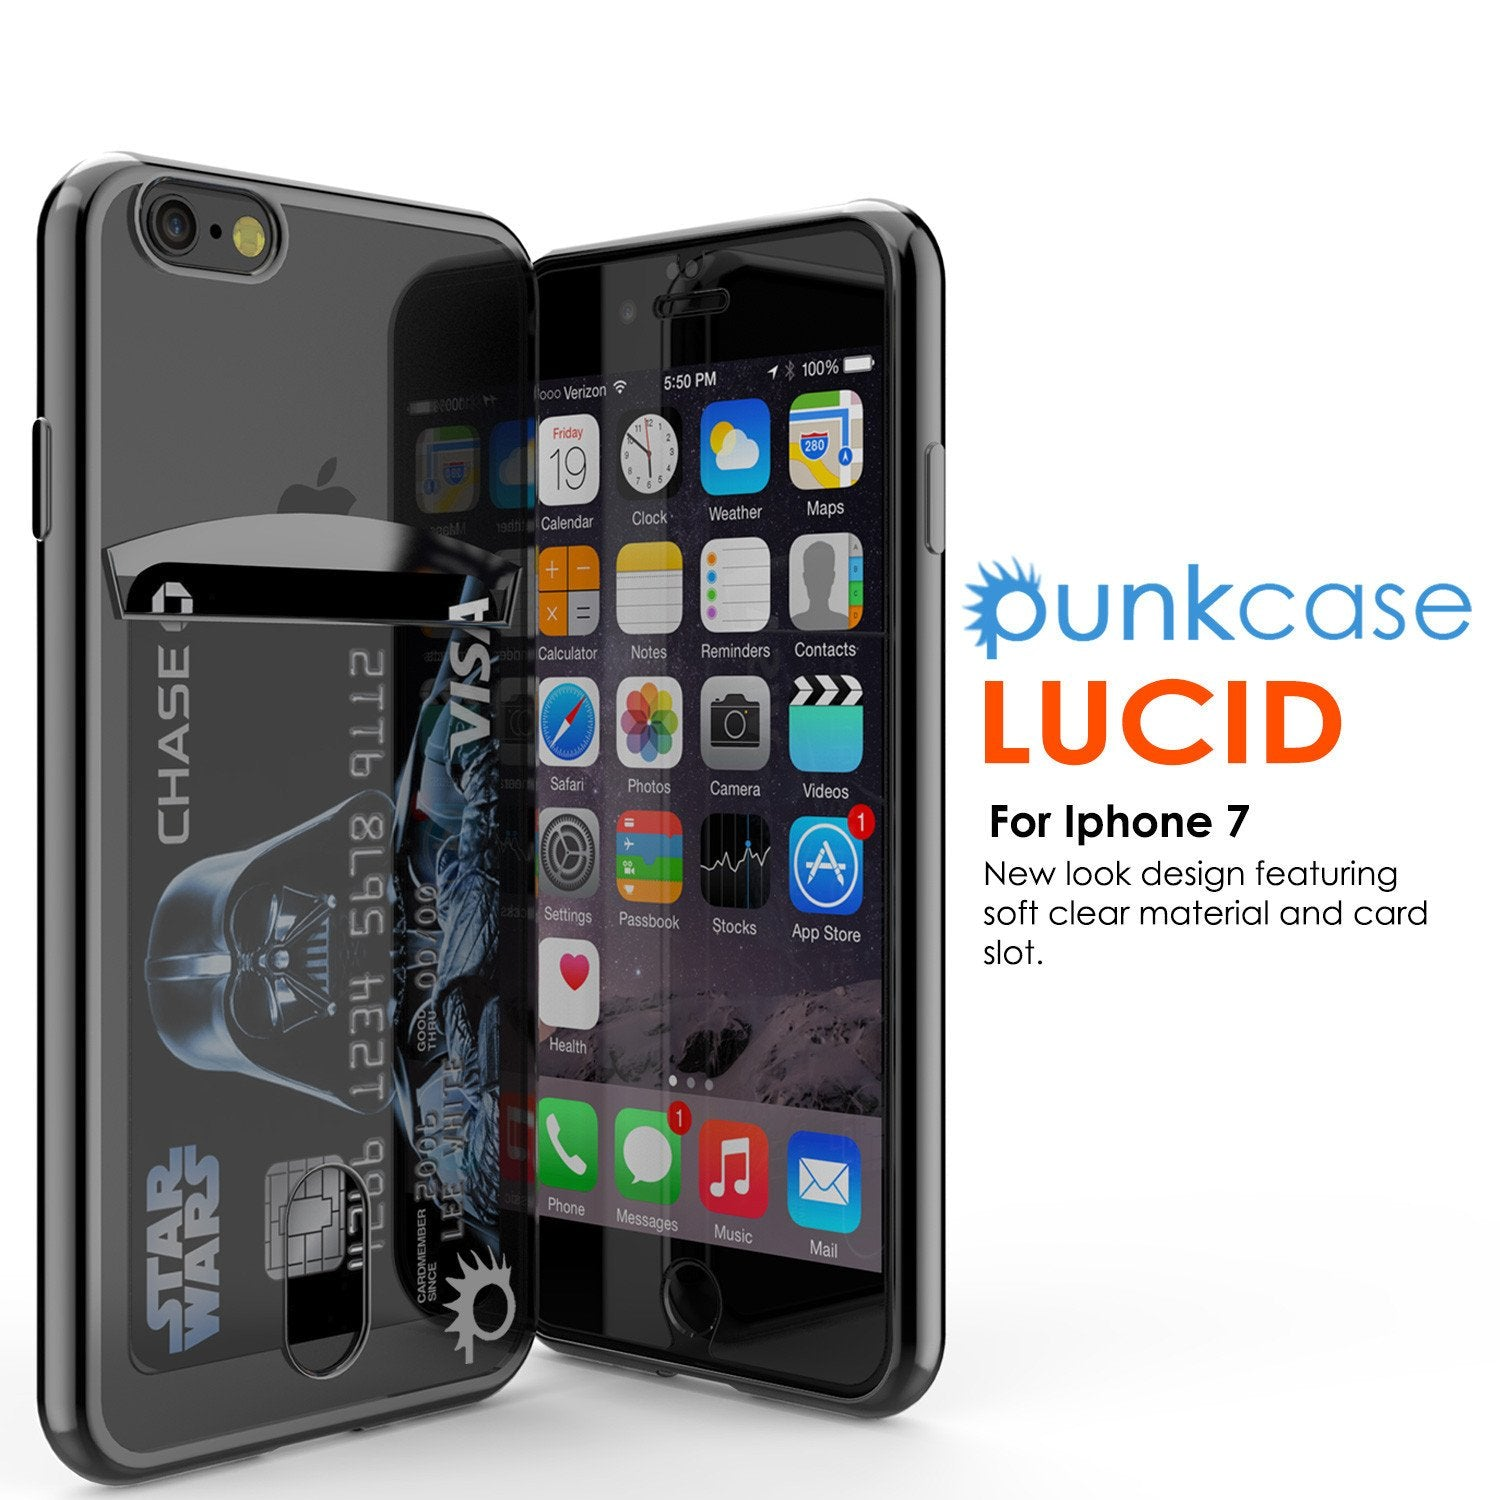 iPhone 7 Case, PUNKCASE® LUCID Black Series for iPhone 7 Premium Impact Protective Armor Case Cover | Clear TPU | Lifetime Warranty Exchange | PUNK SHIELD Screen Protector | Ultra Fit